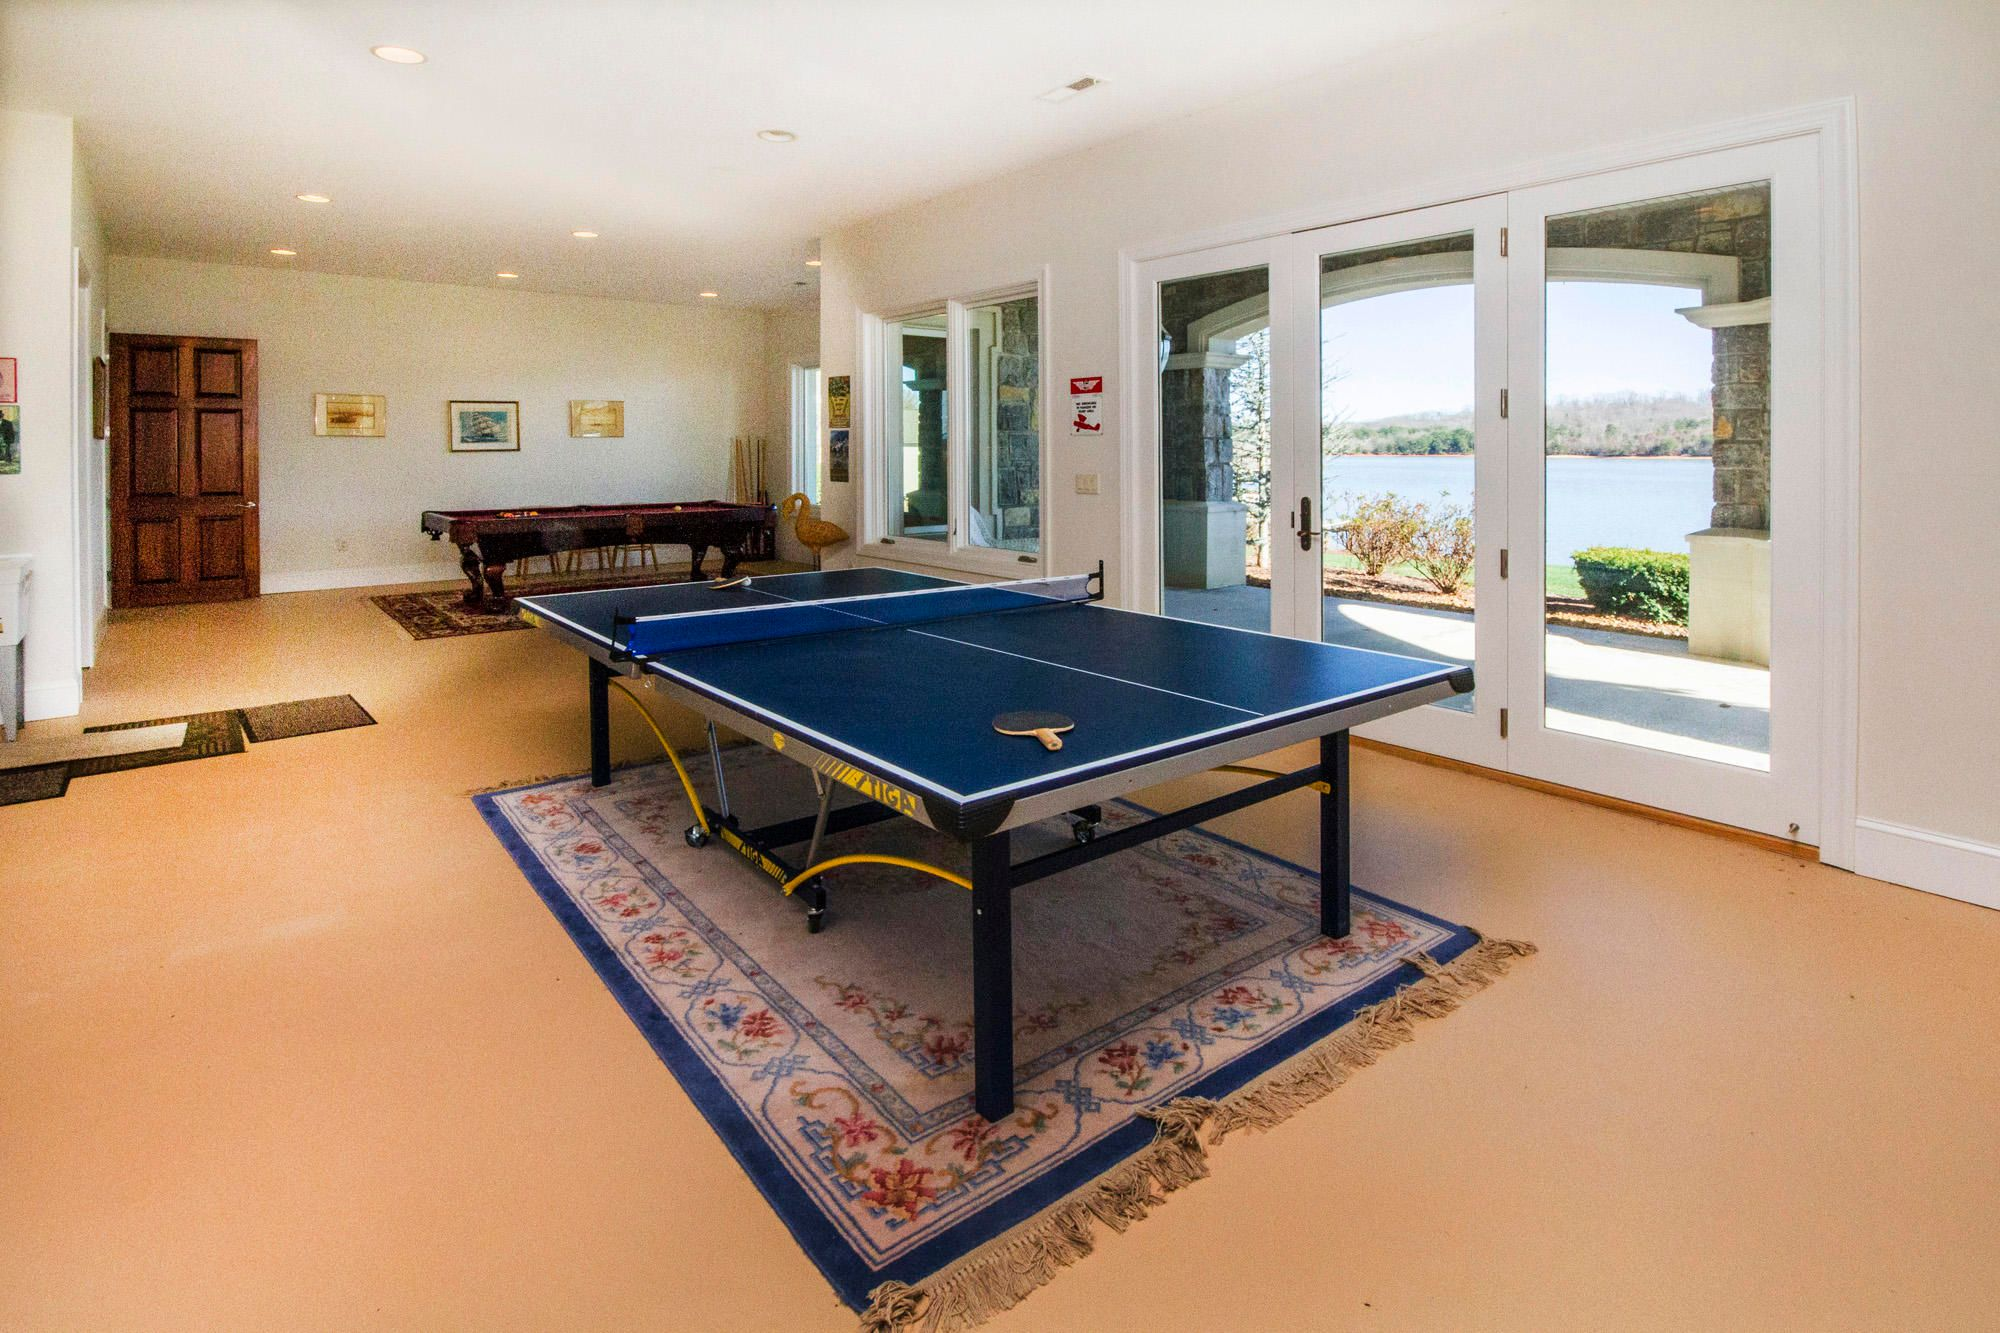 Pool & Ping Pong Space Too!